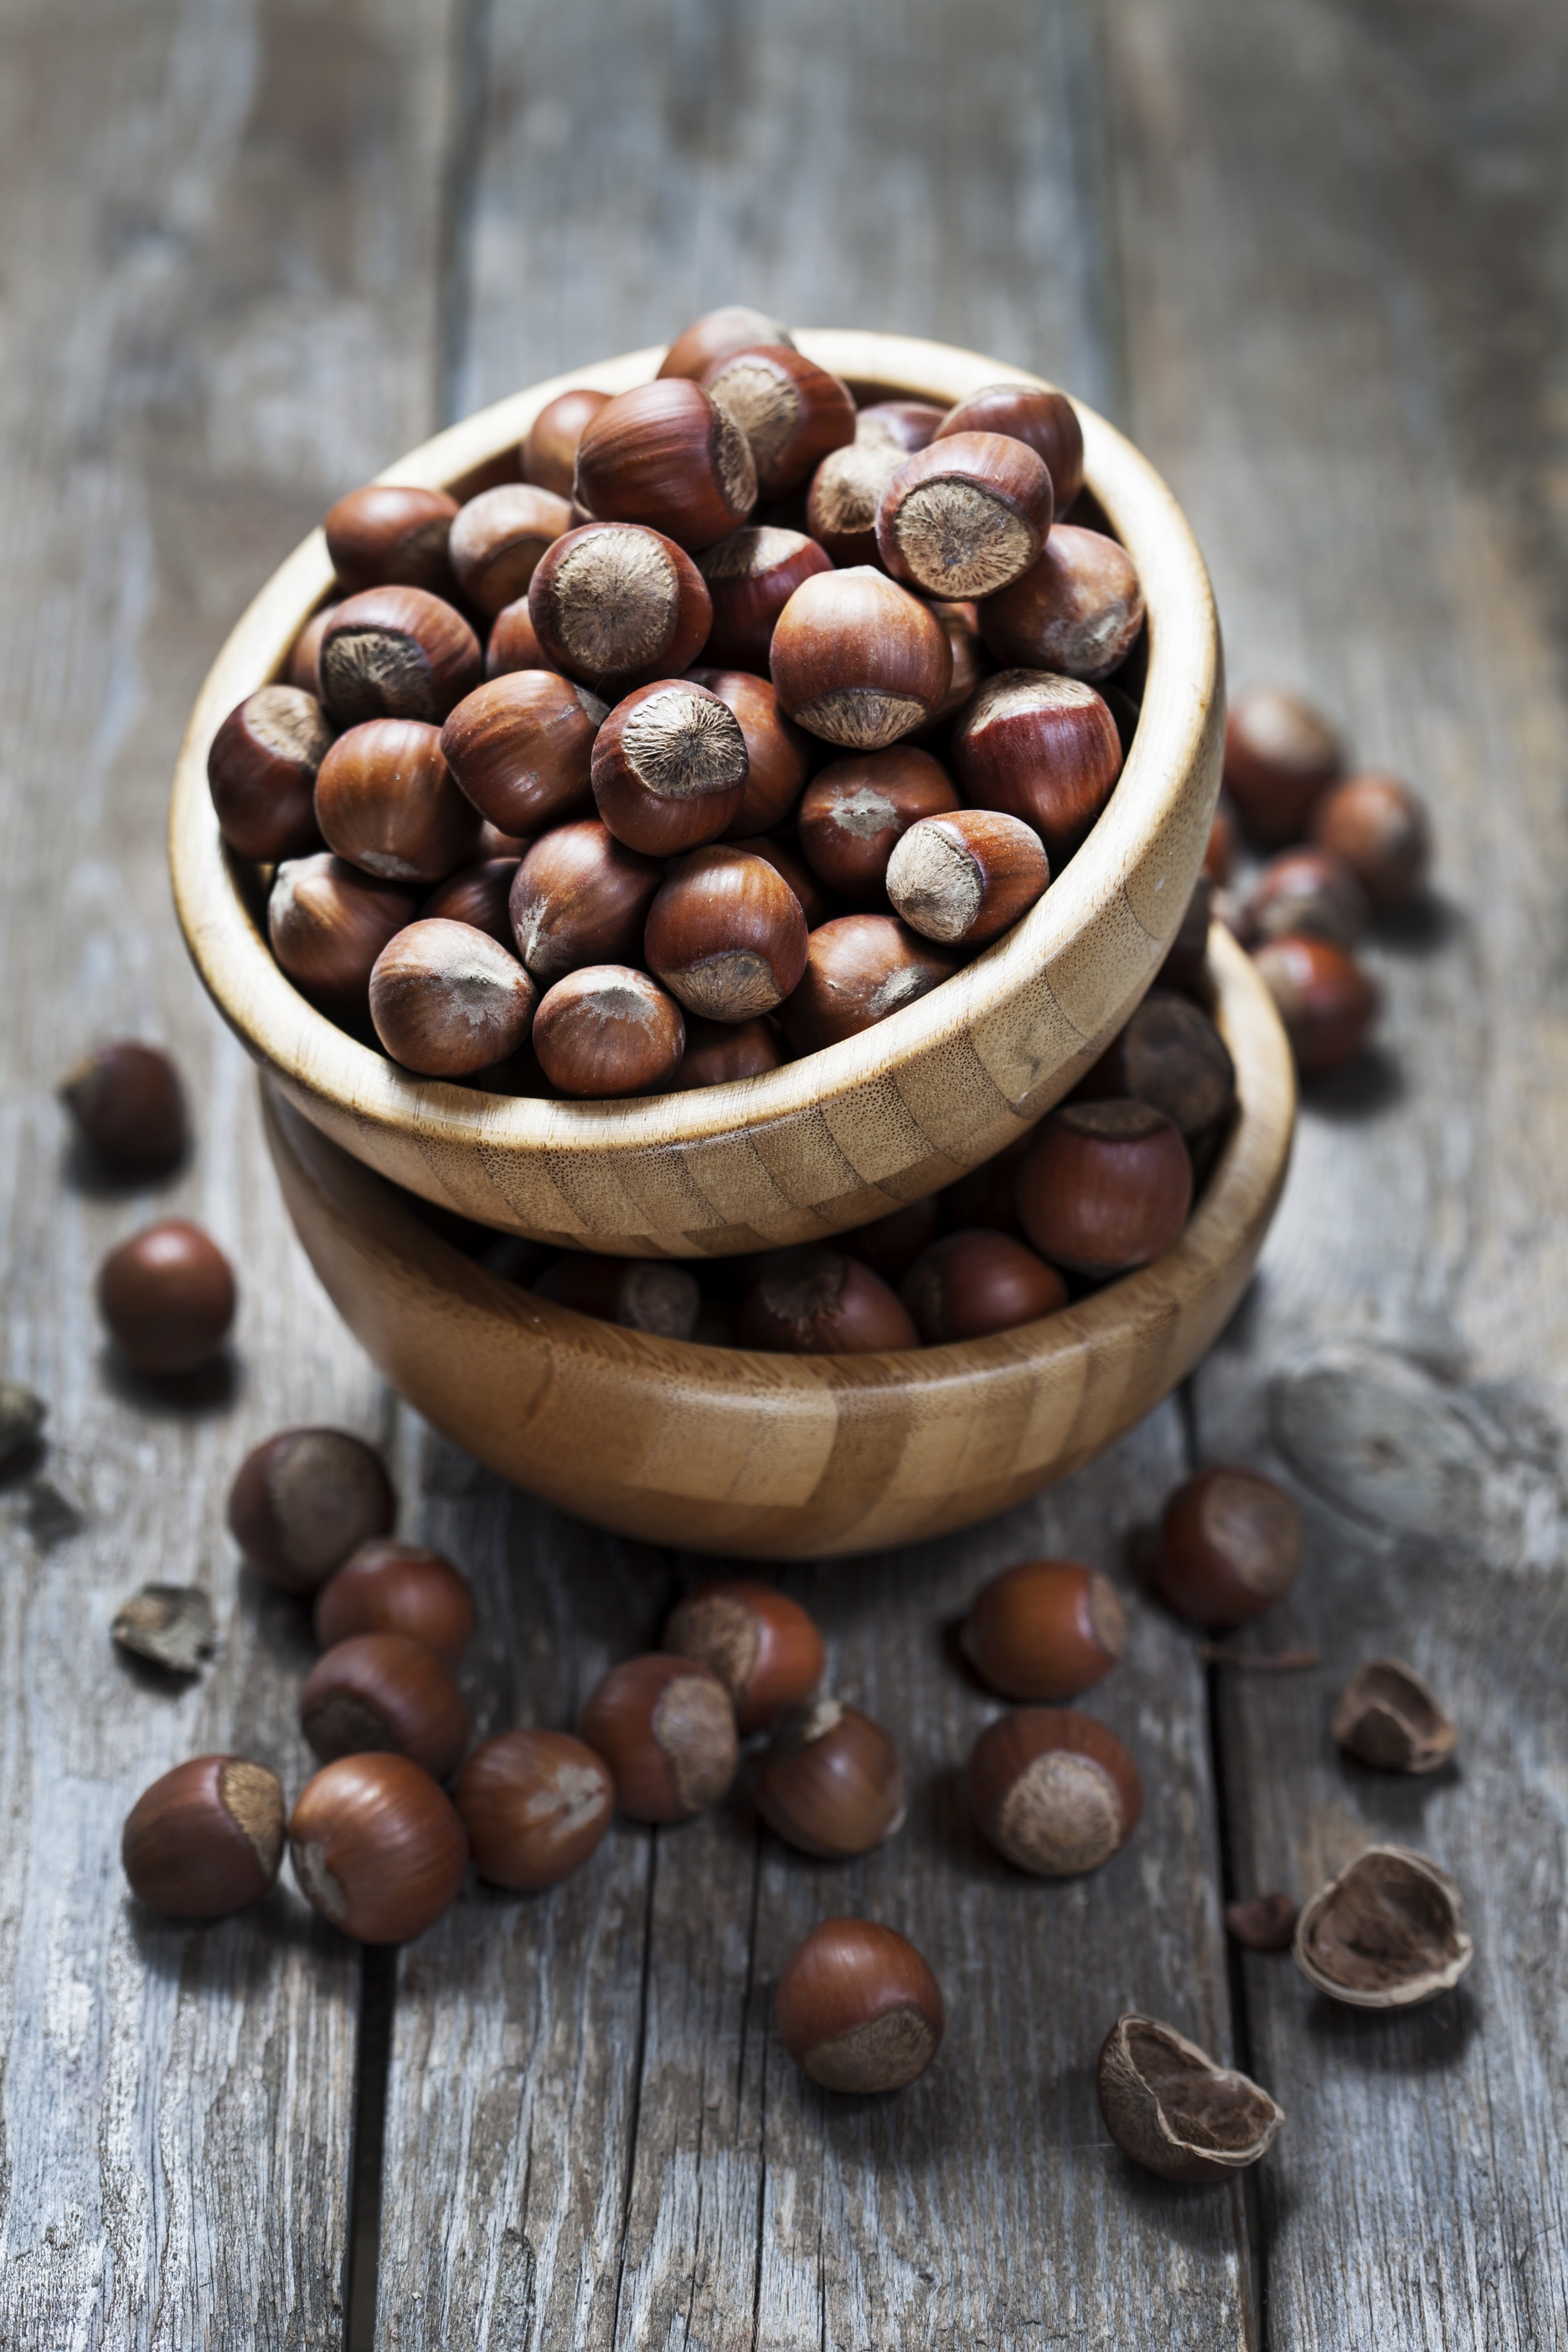 hazelnut seed brown bean food photo nut beans roasted